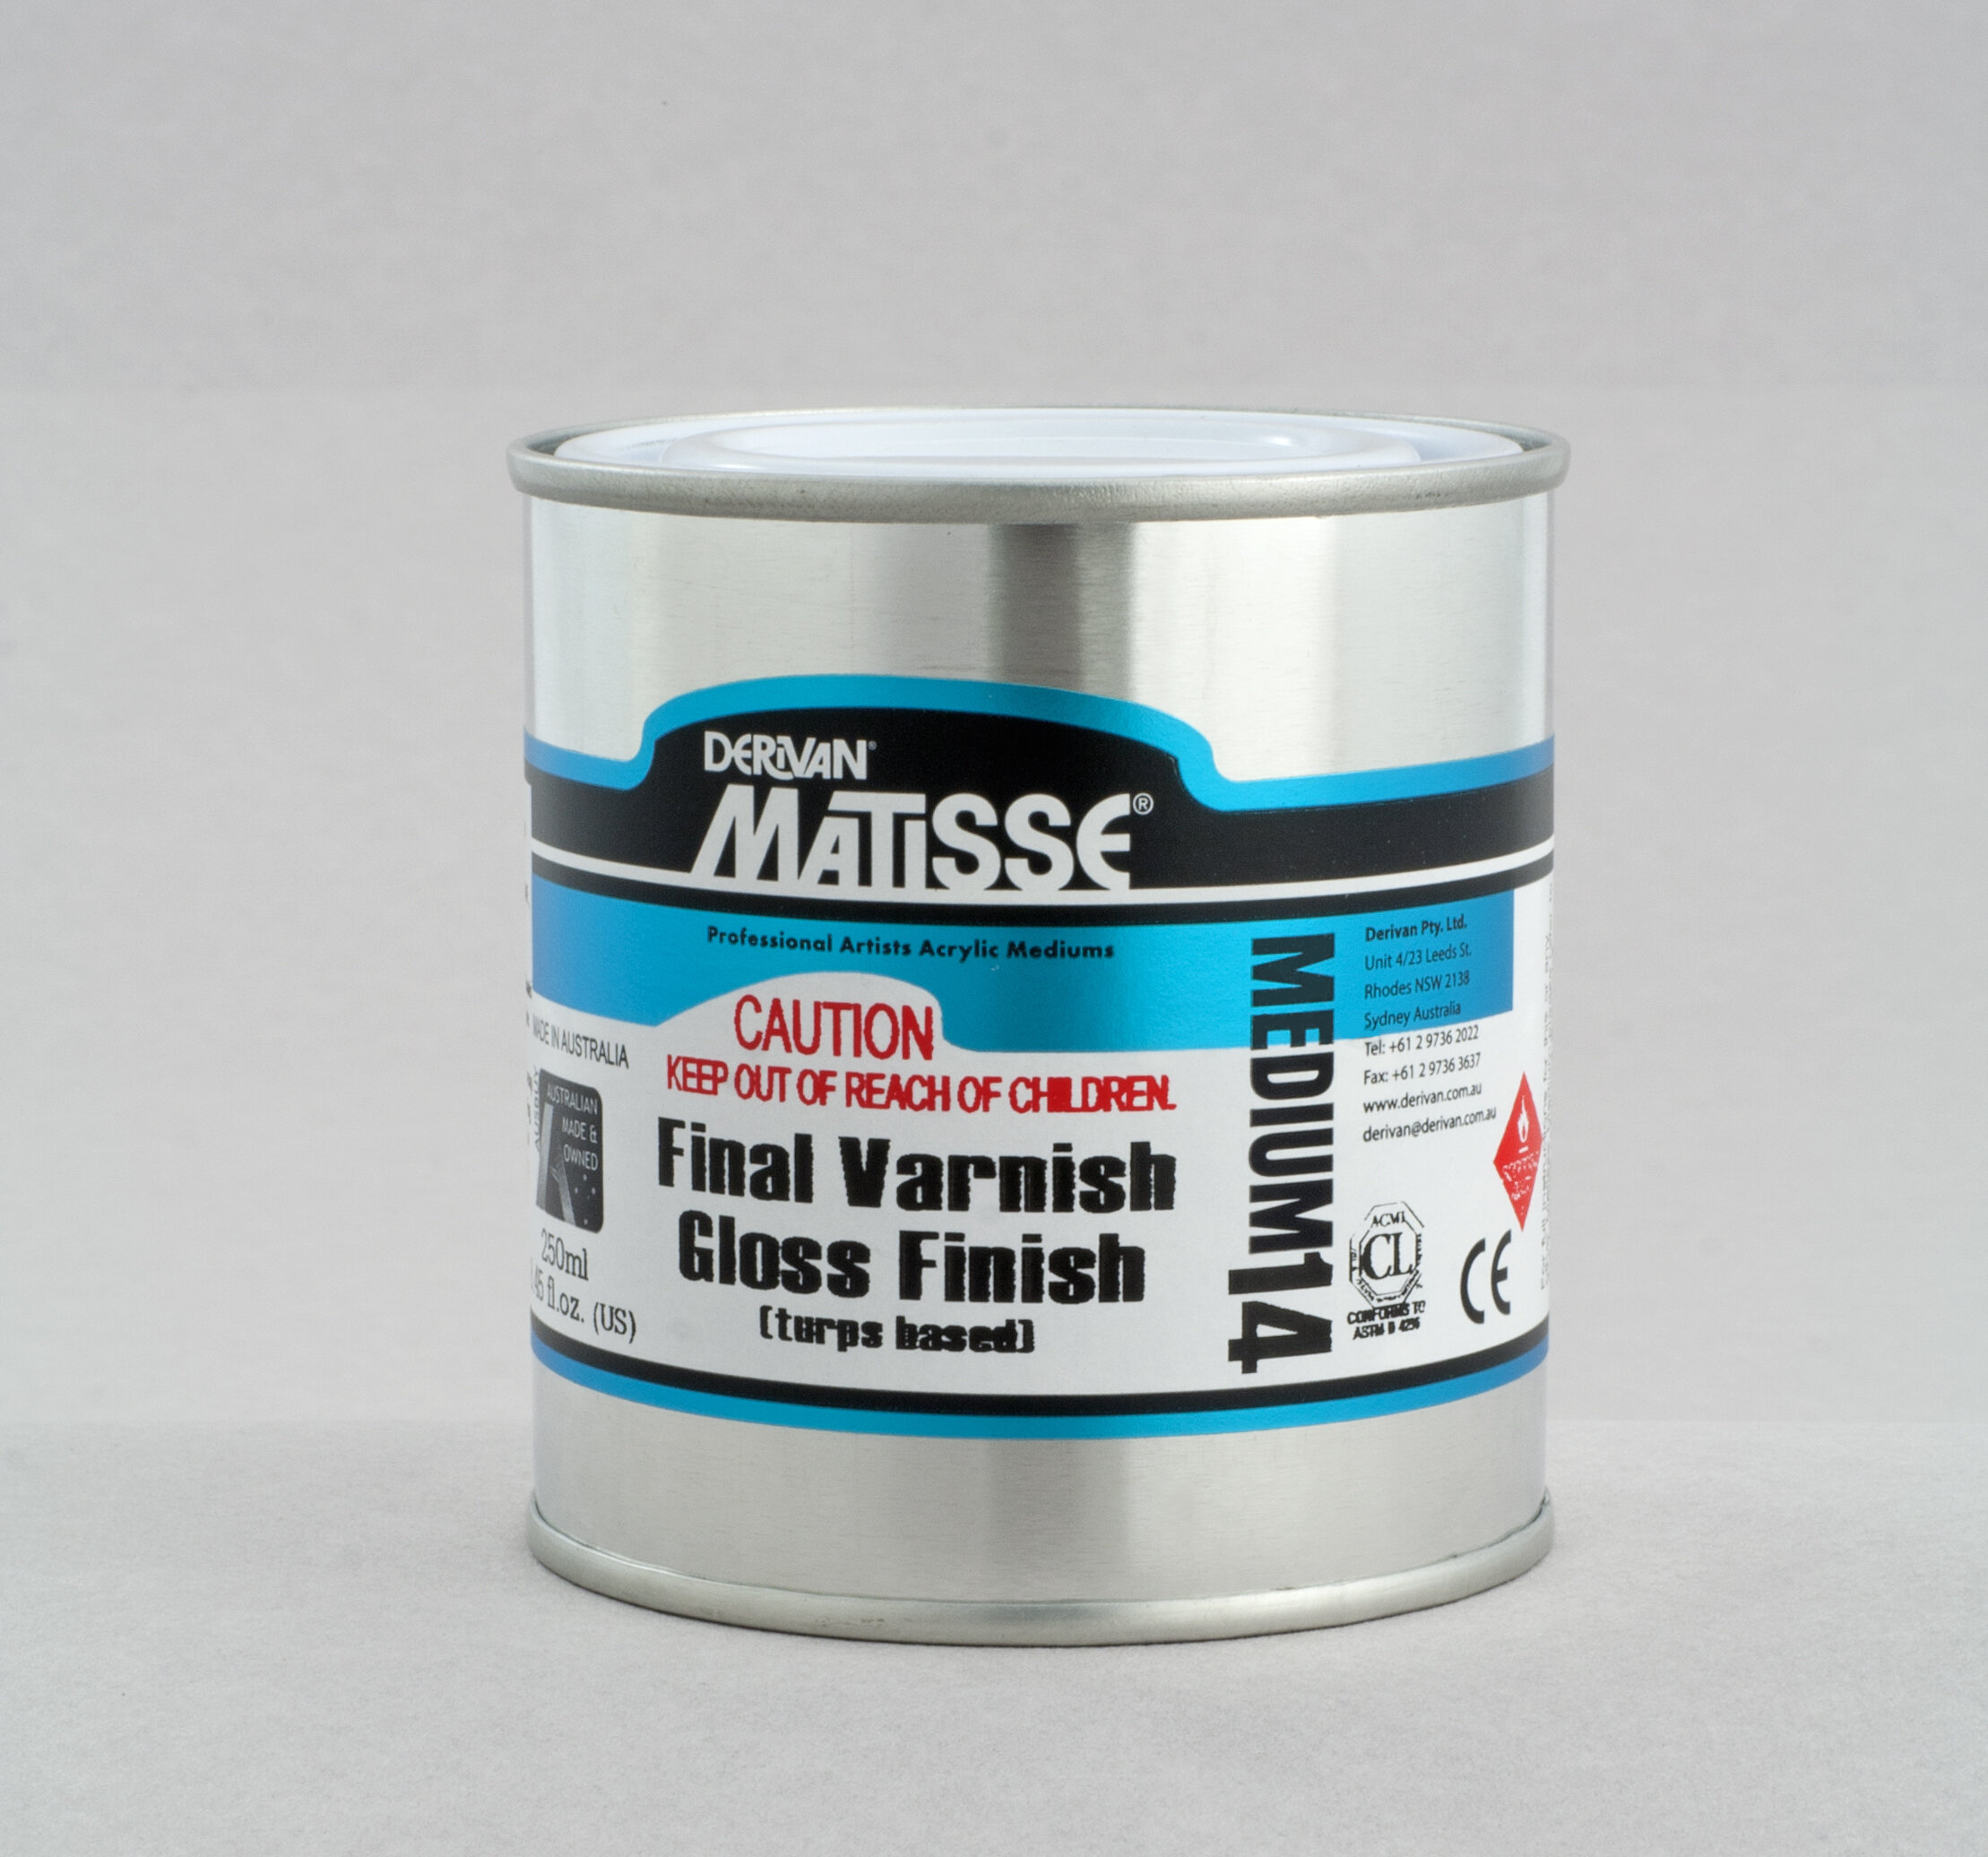 MM14 Gloss Varnish(turps-based) - ———————Conservation quality solvent-based non-yellowing acrylic gloss finish varnish. Redissolves in turps to strip and clean or to rework.